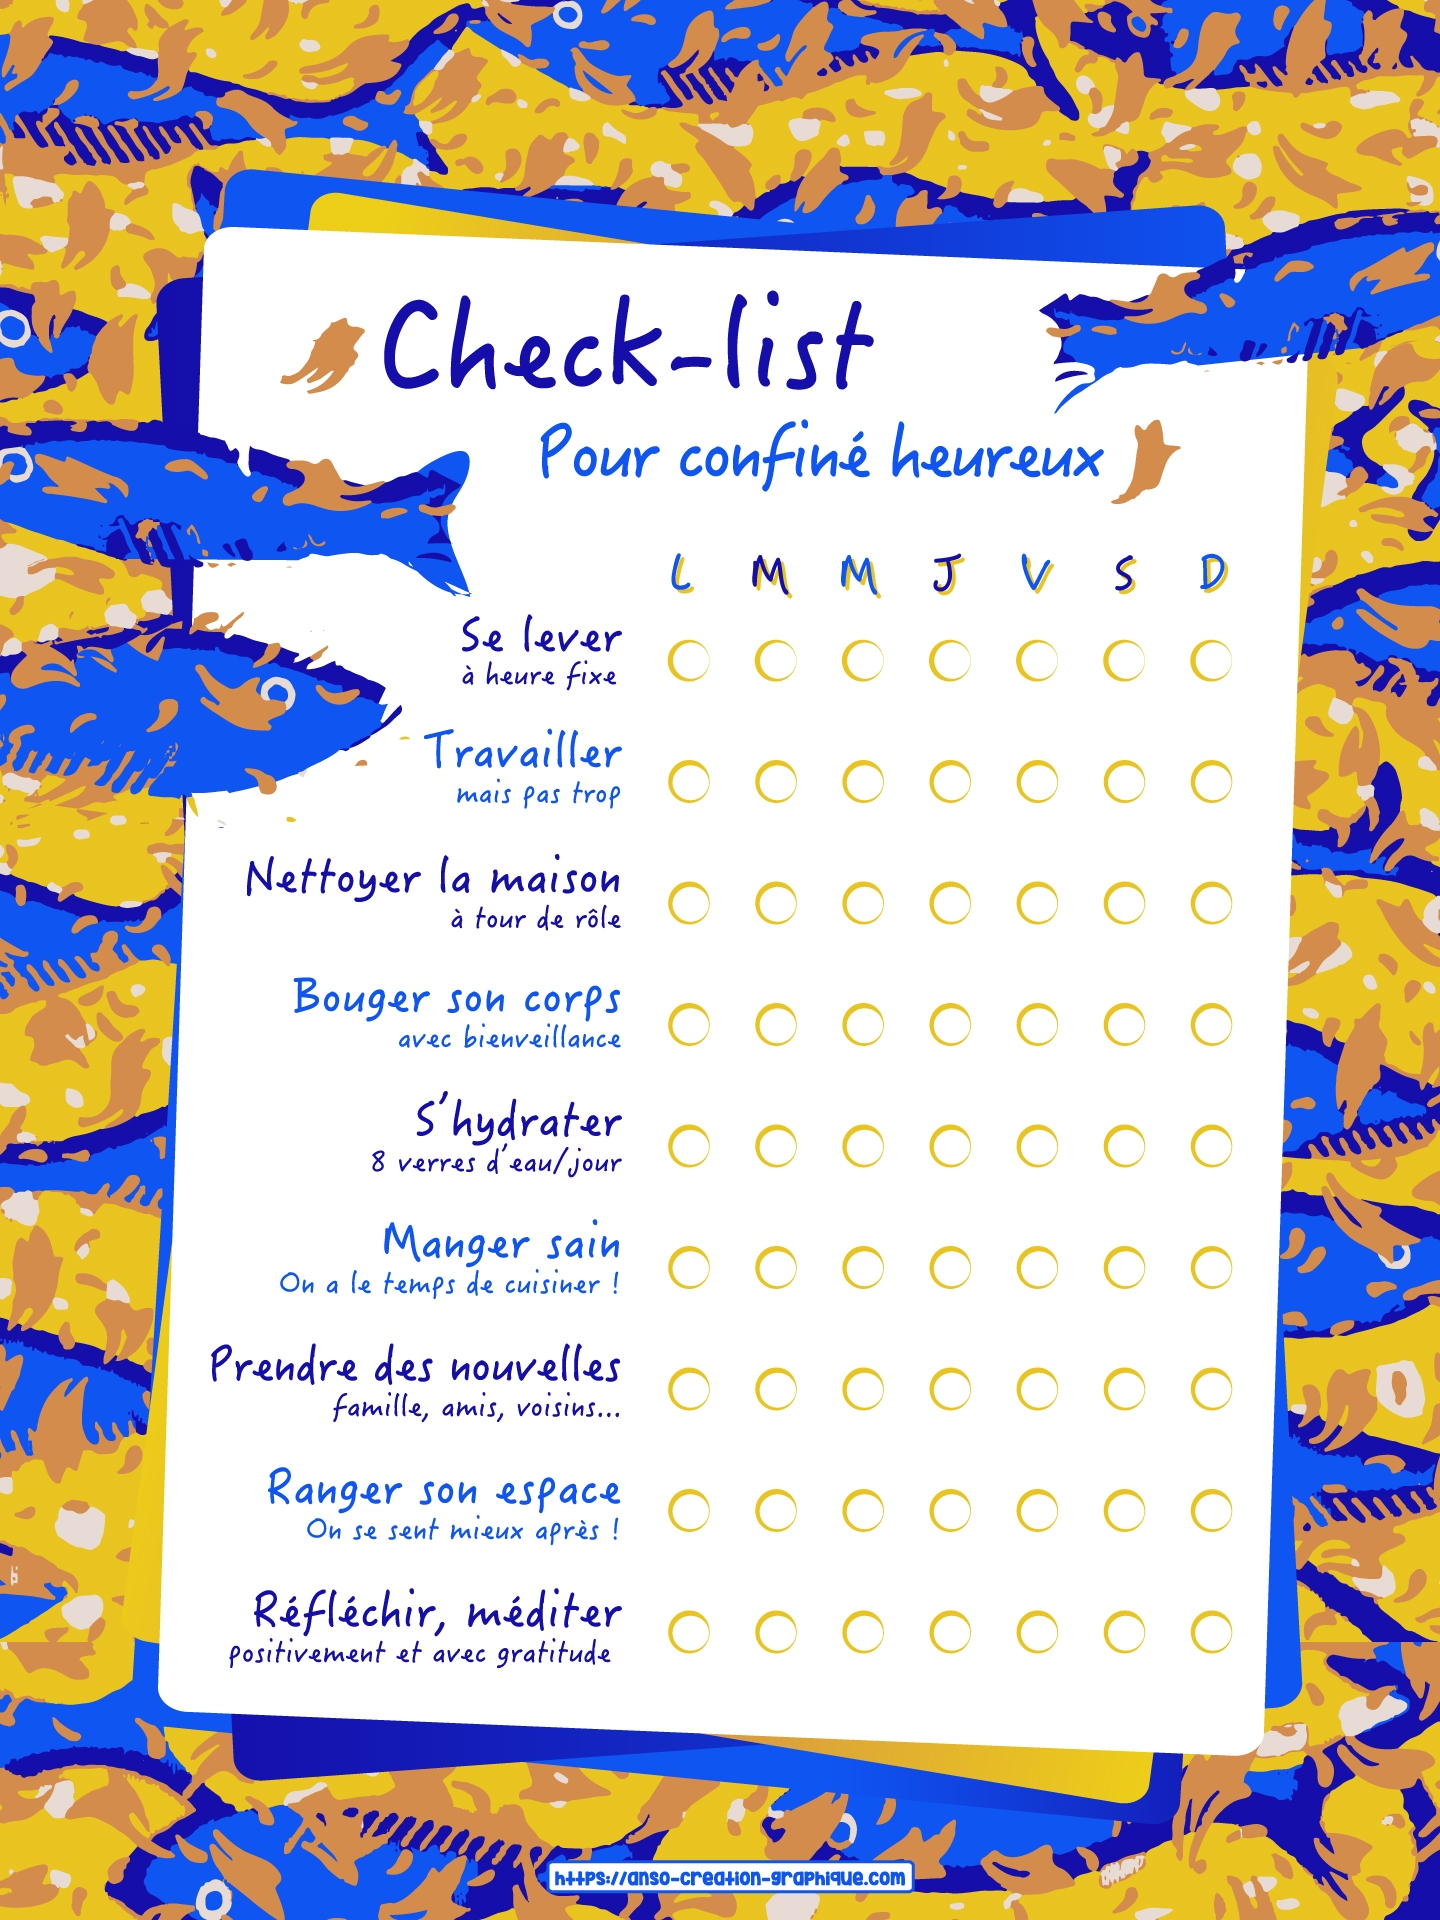 Check-list-confiné-heureux